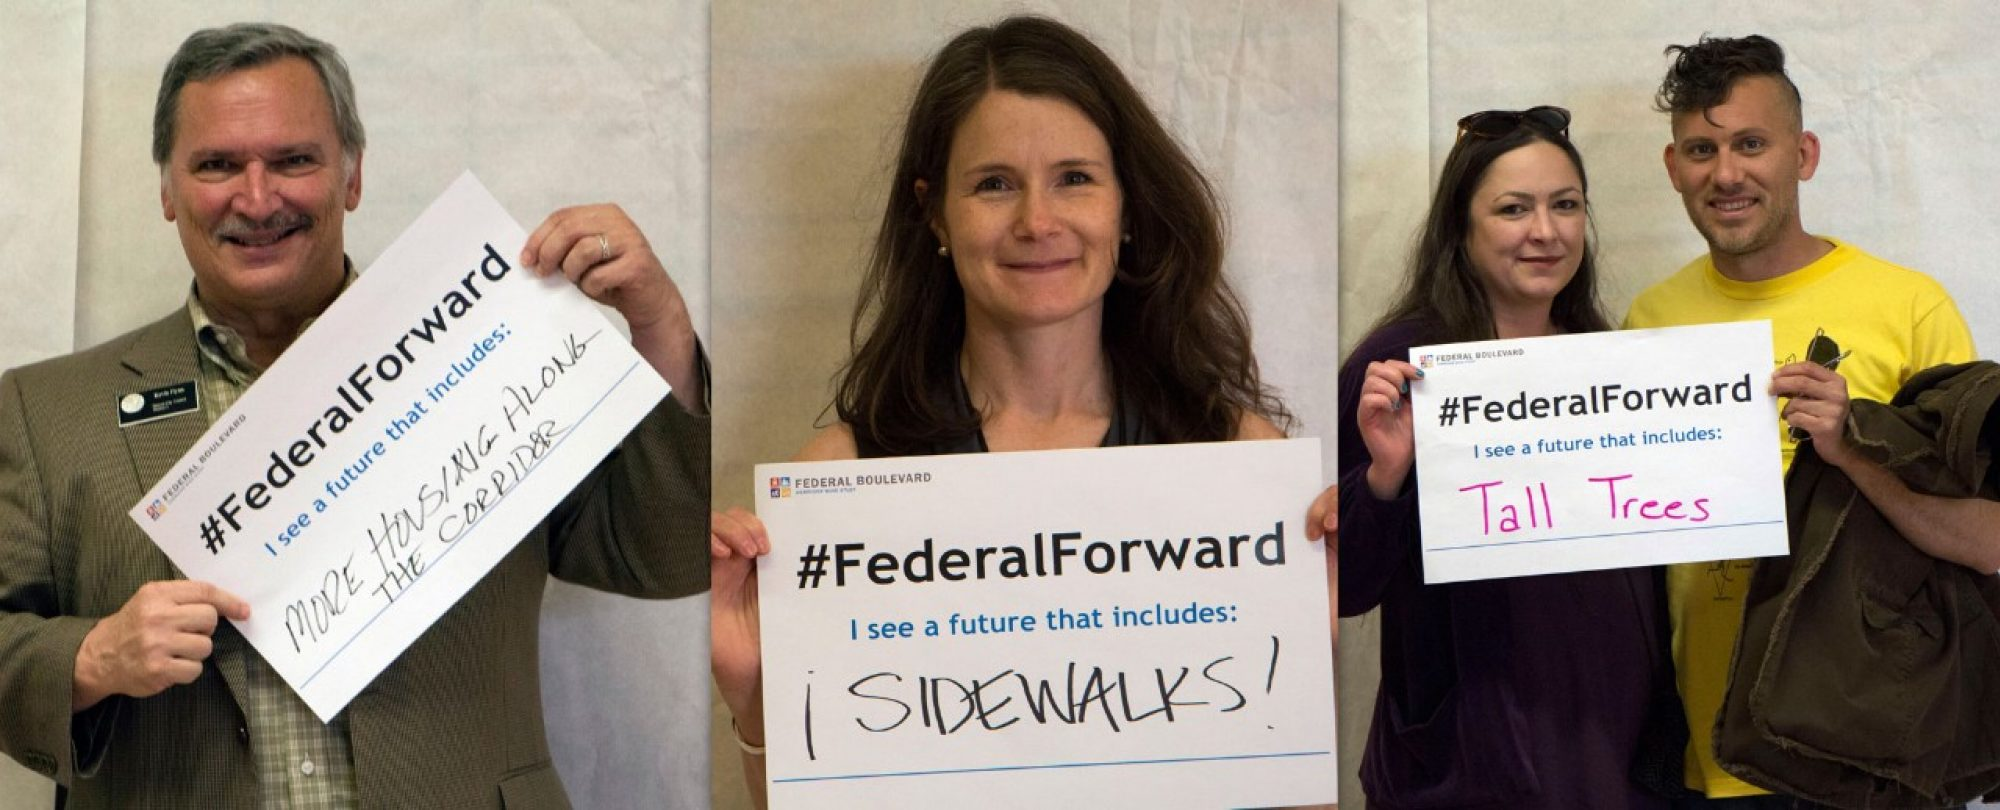 residents holding #FederalForward signs: